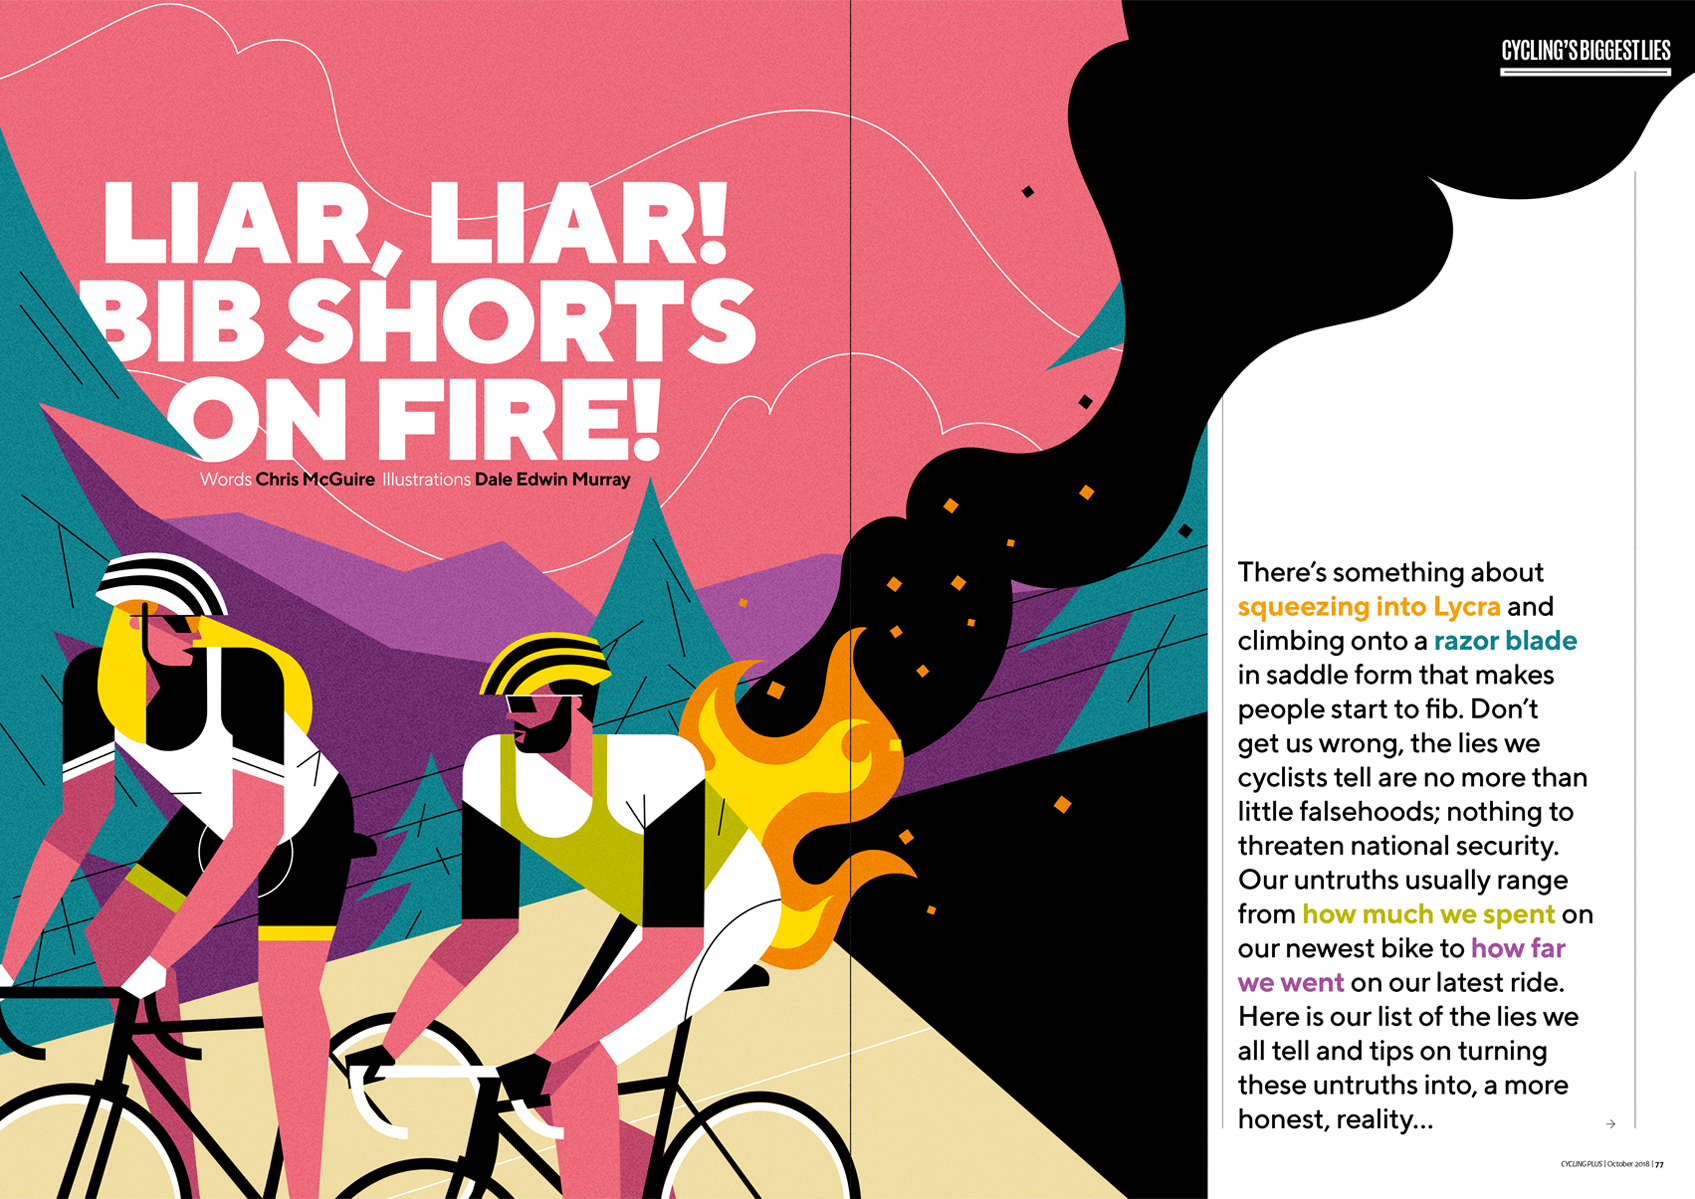 dale edwin murray freelance illustrator cycling plus magazine illustration